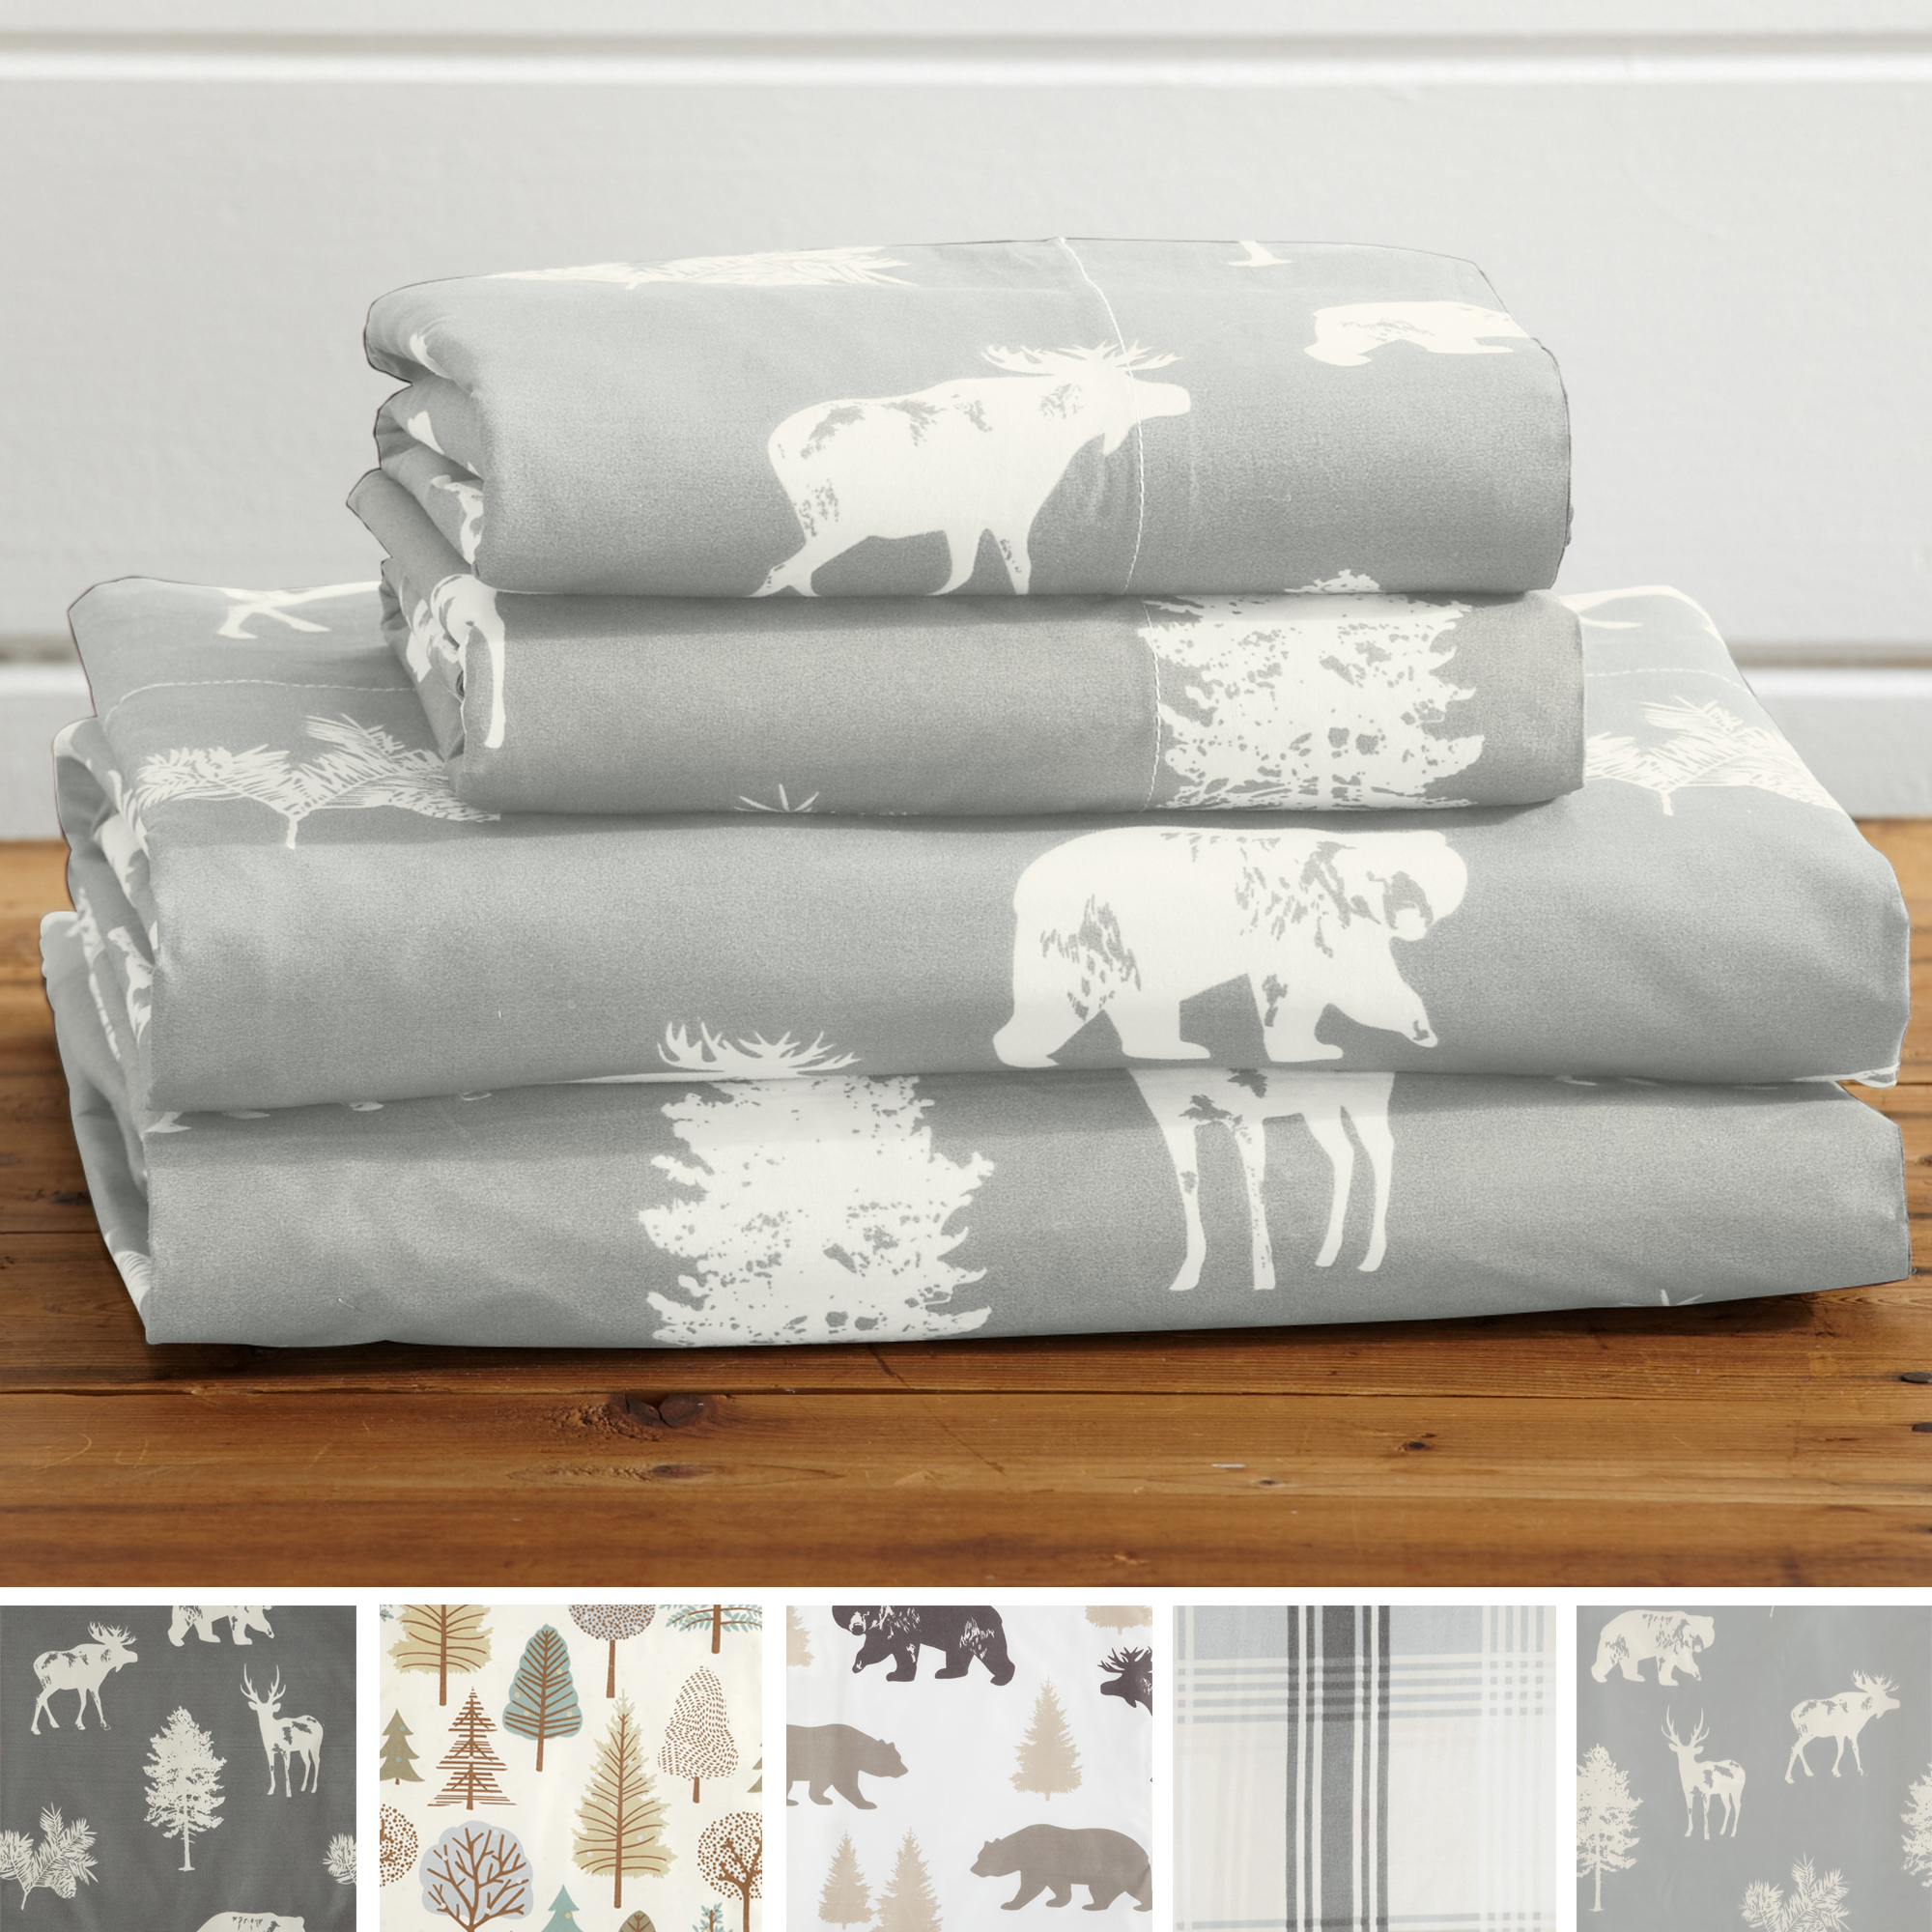 4-Piece Lodge Printed Microfiber Sheet Set By Great Bay Home